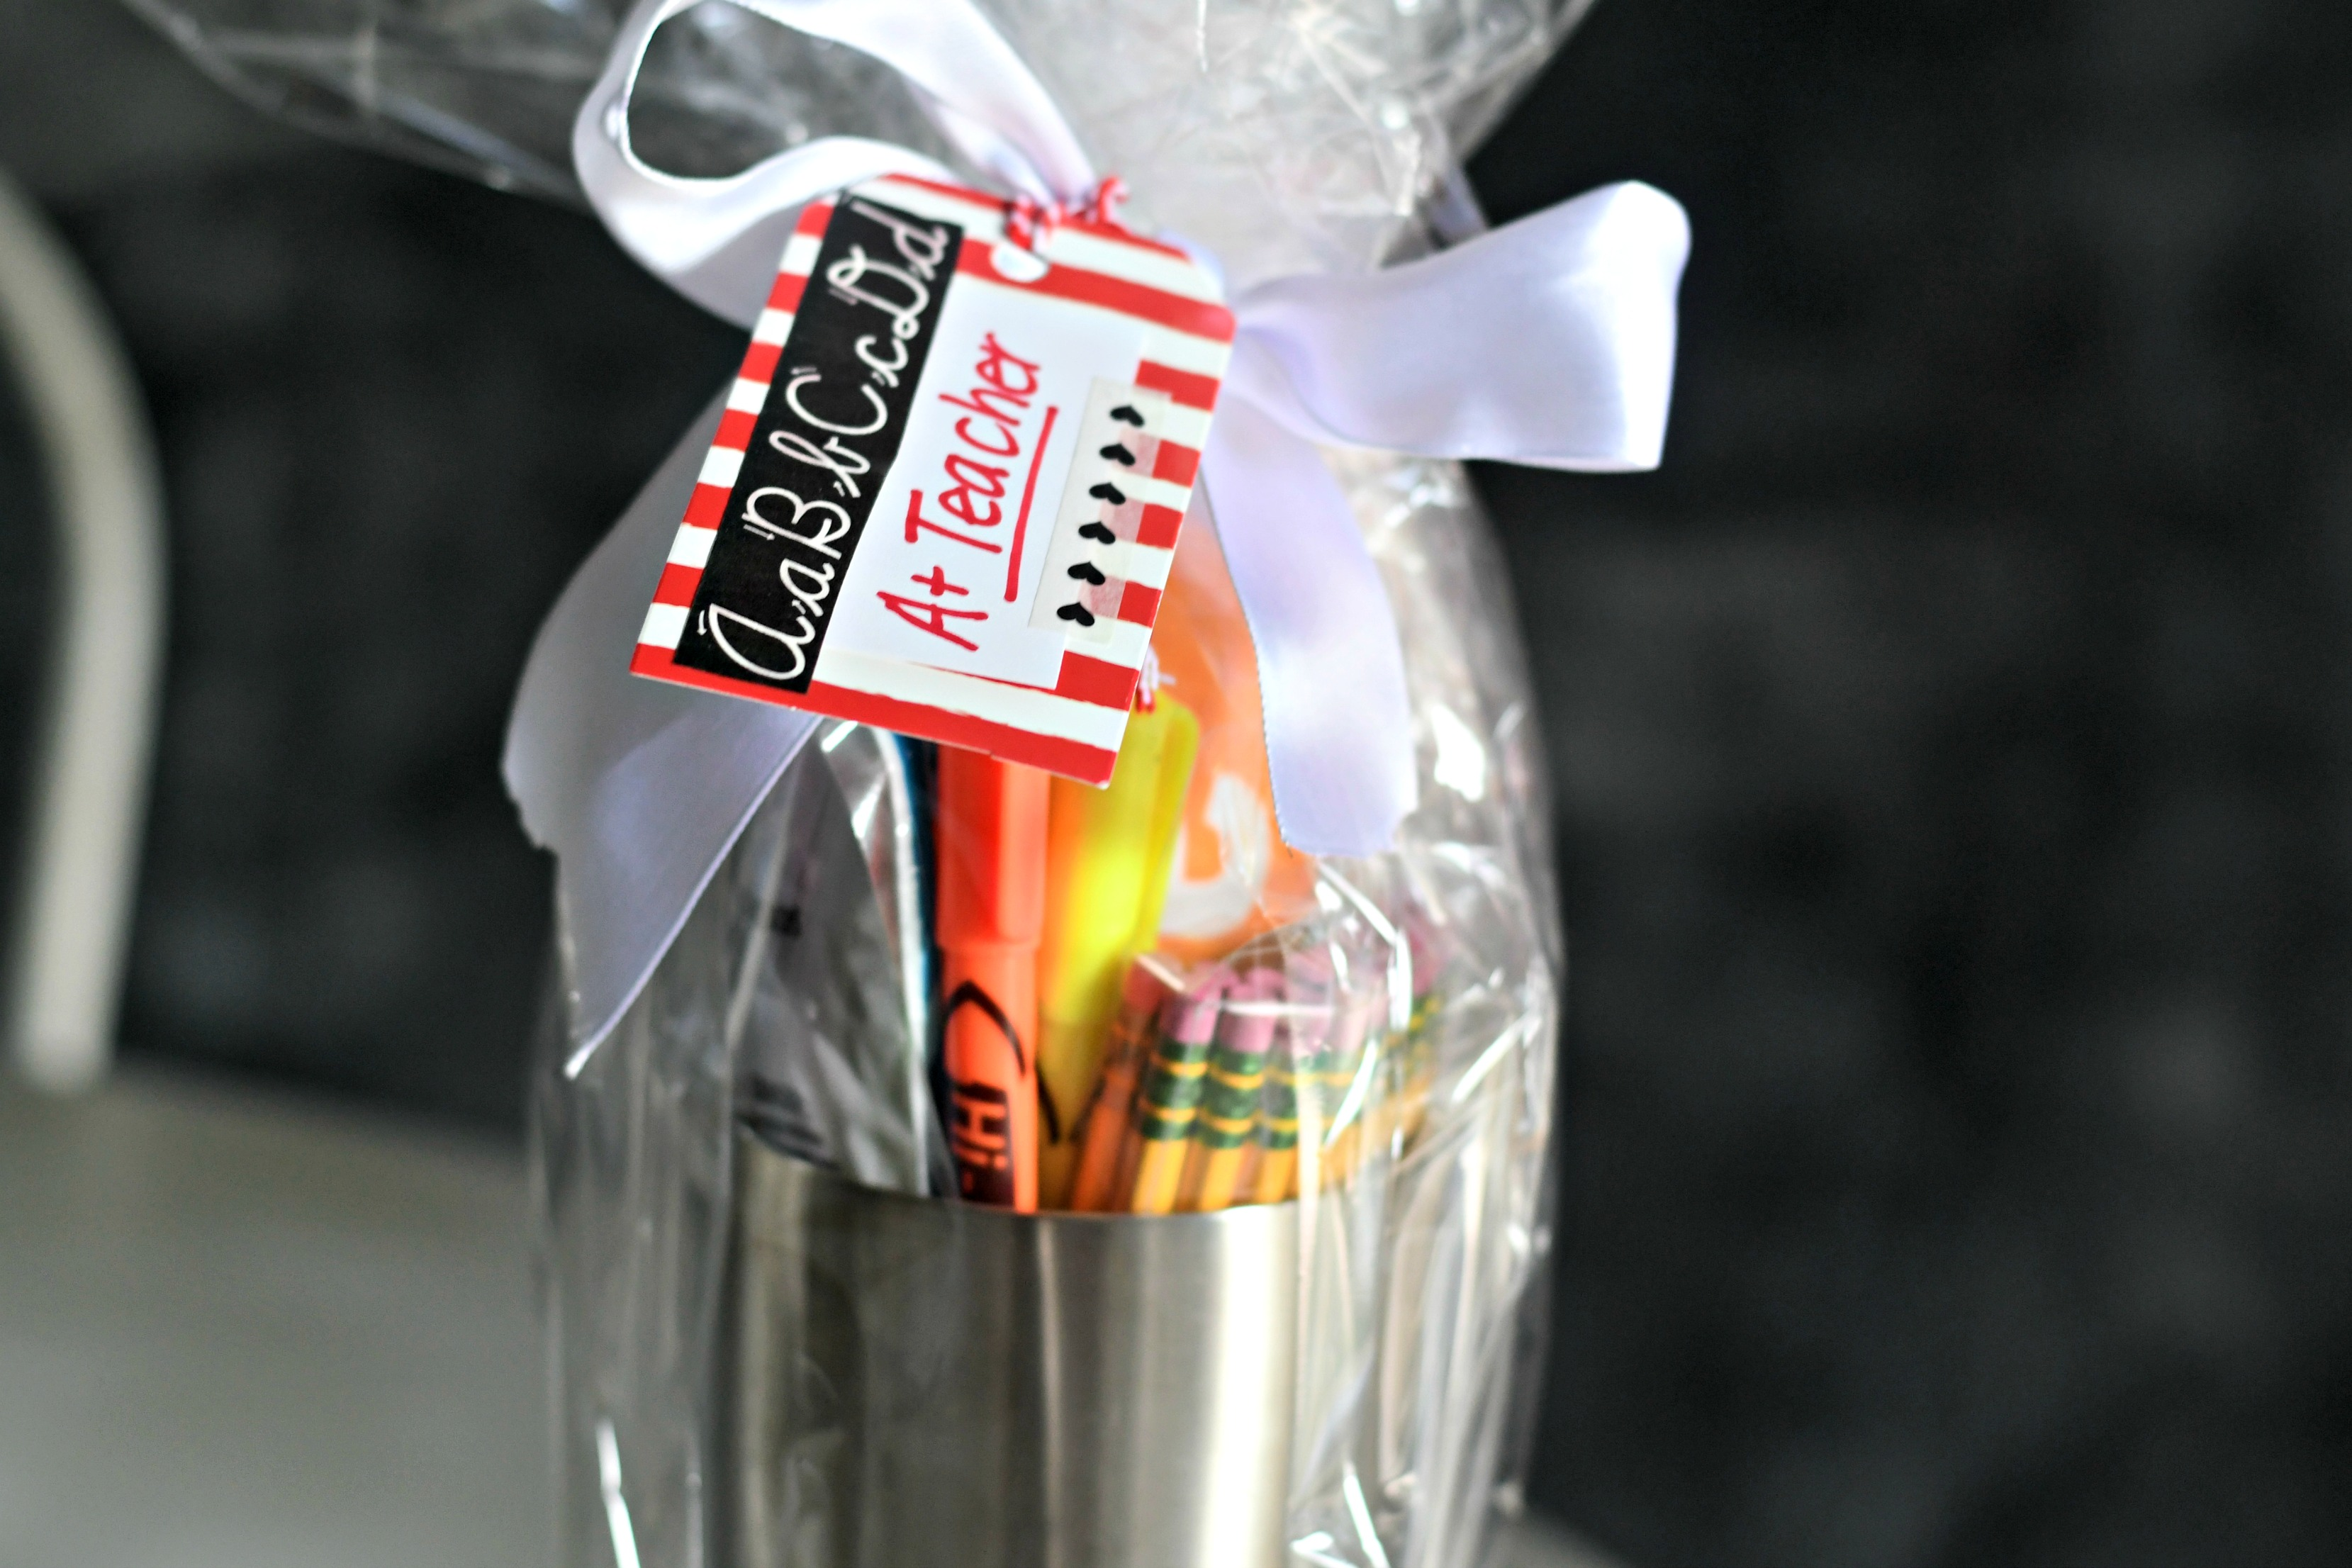 DIY Tumbler Gift basket ideas – cellophane wrapped teacher gift